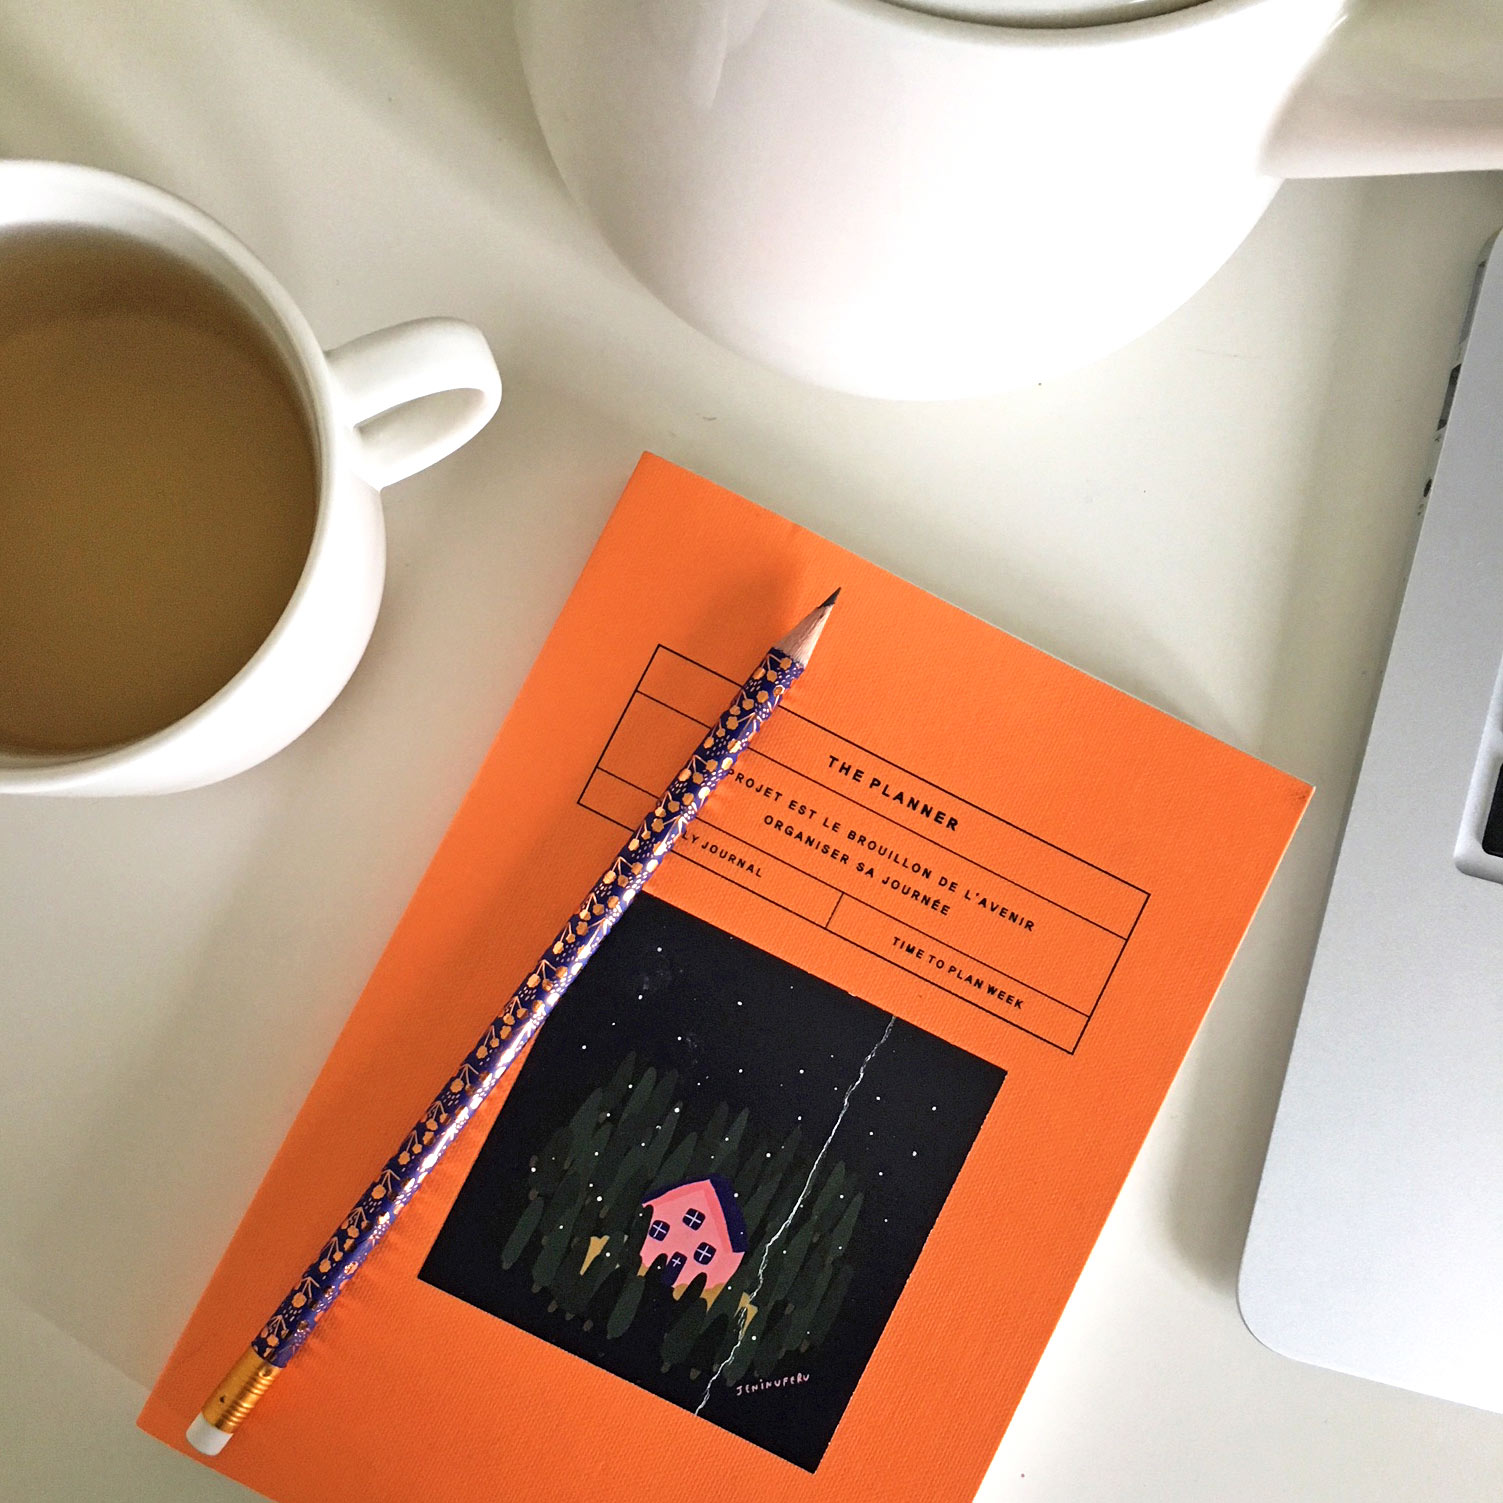 9:30 am - I start every morning by planning my day. I like to make lists of different tasks I have to do. After that I reply to emails and drink a cup of tea.